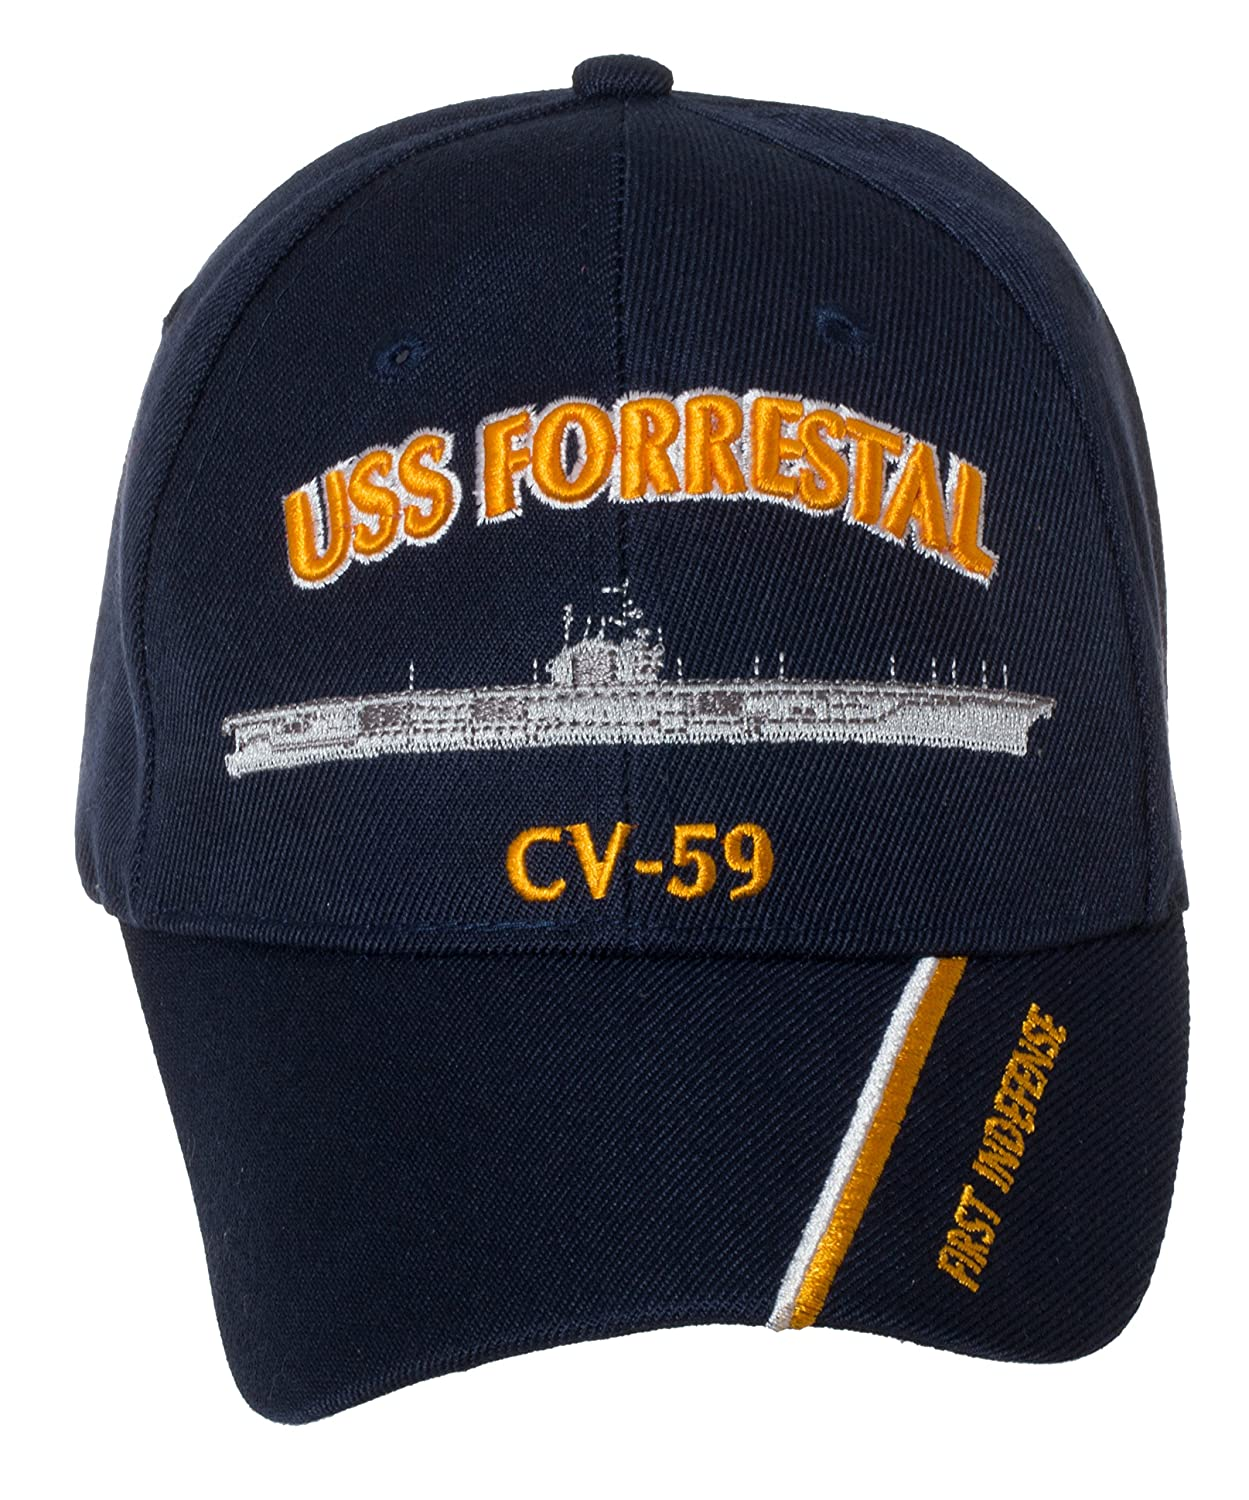 Artisan Owl Officially Licensed USS Forrestal CV-59 Embroidered Navy Blue  Baseball Cap at Amazon Men s Clothing store  2637e7bb1ee